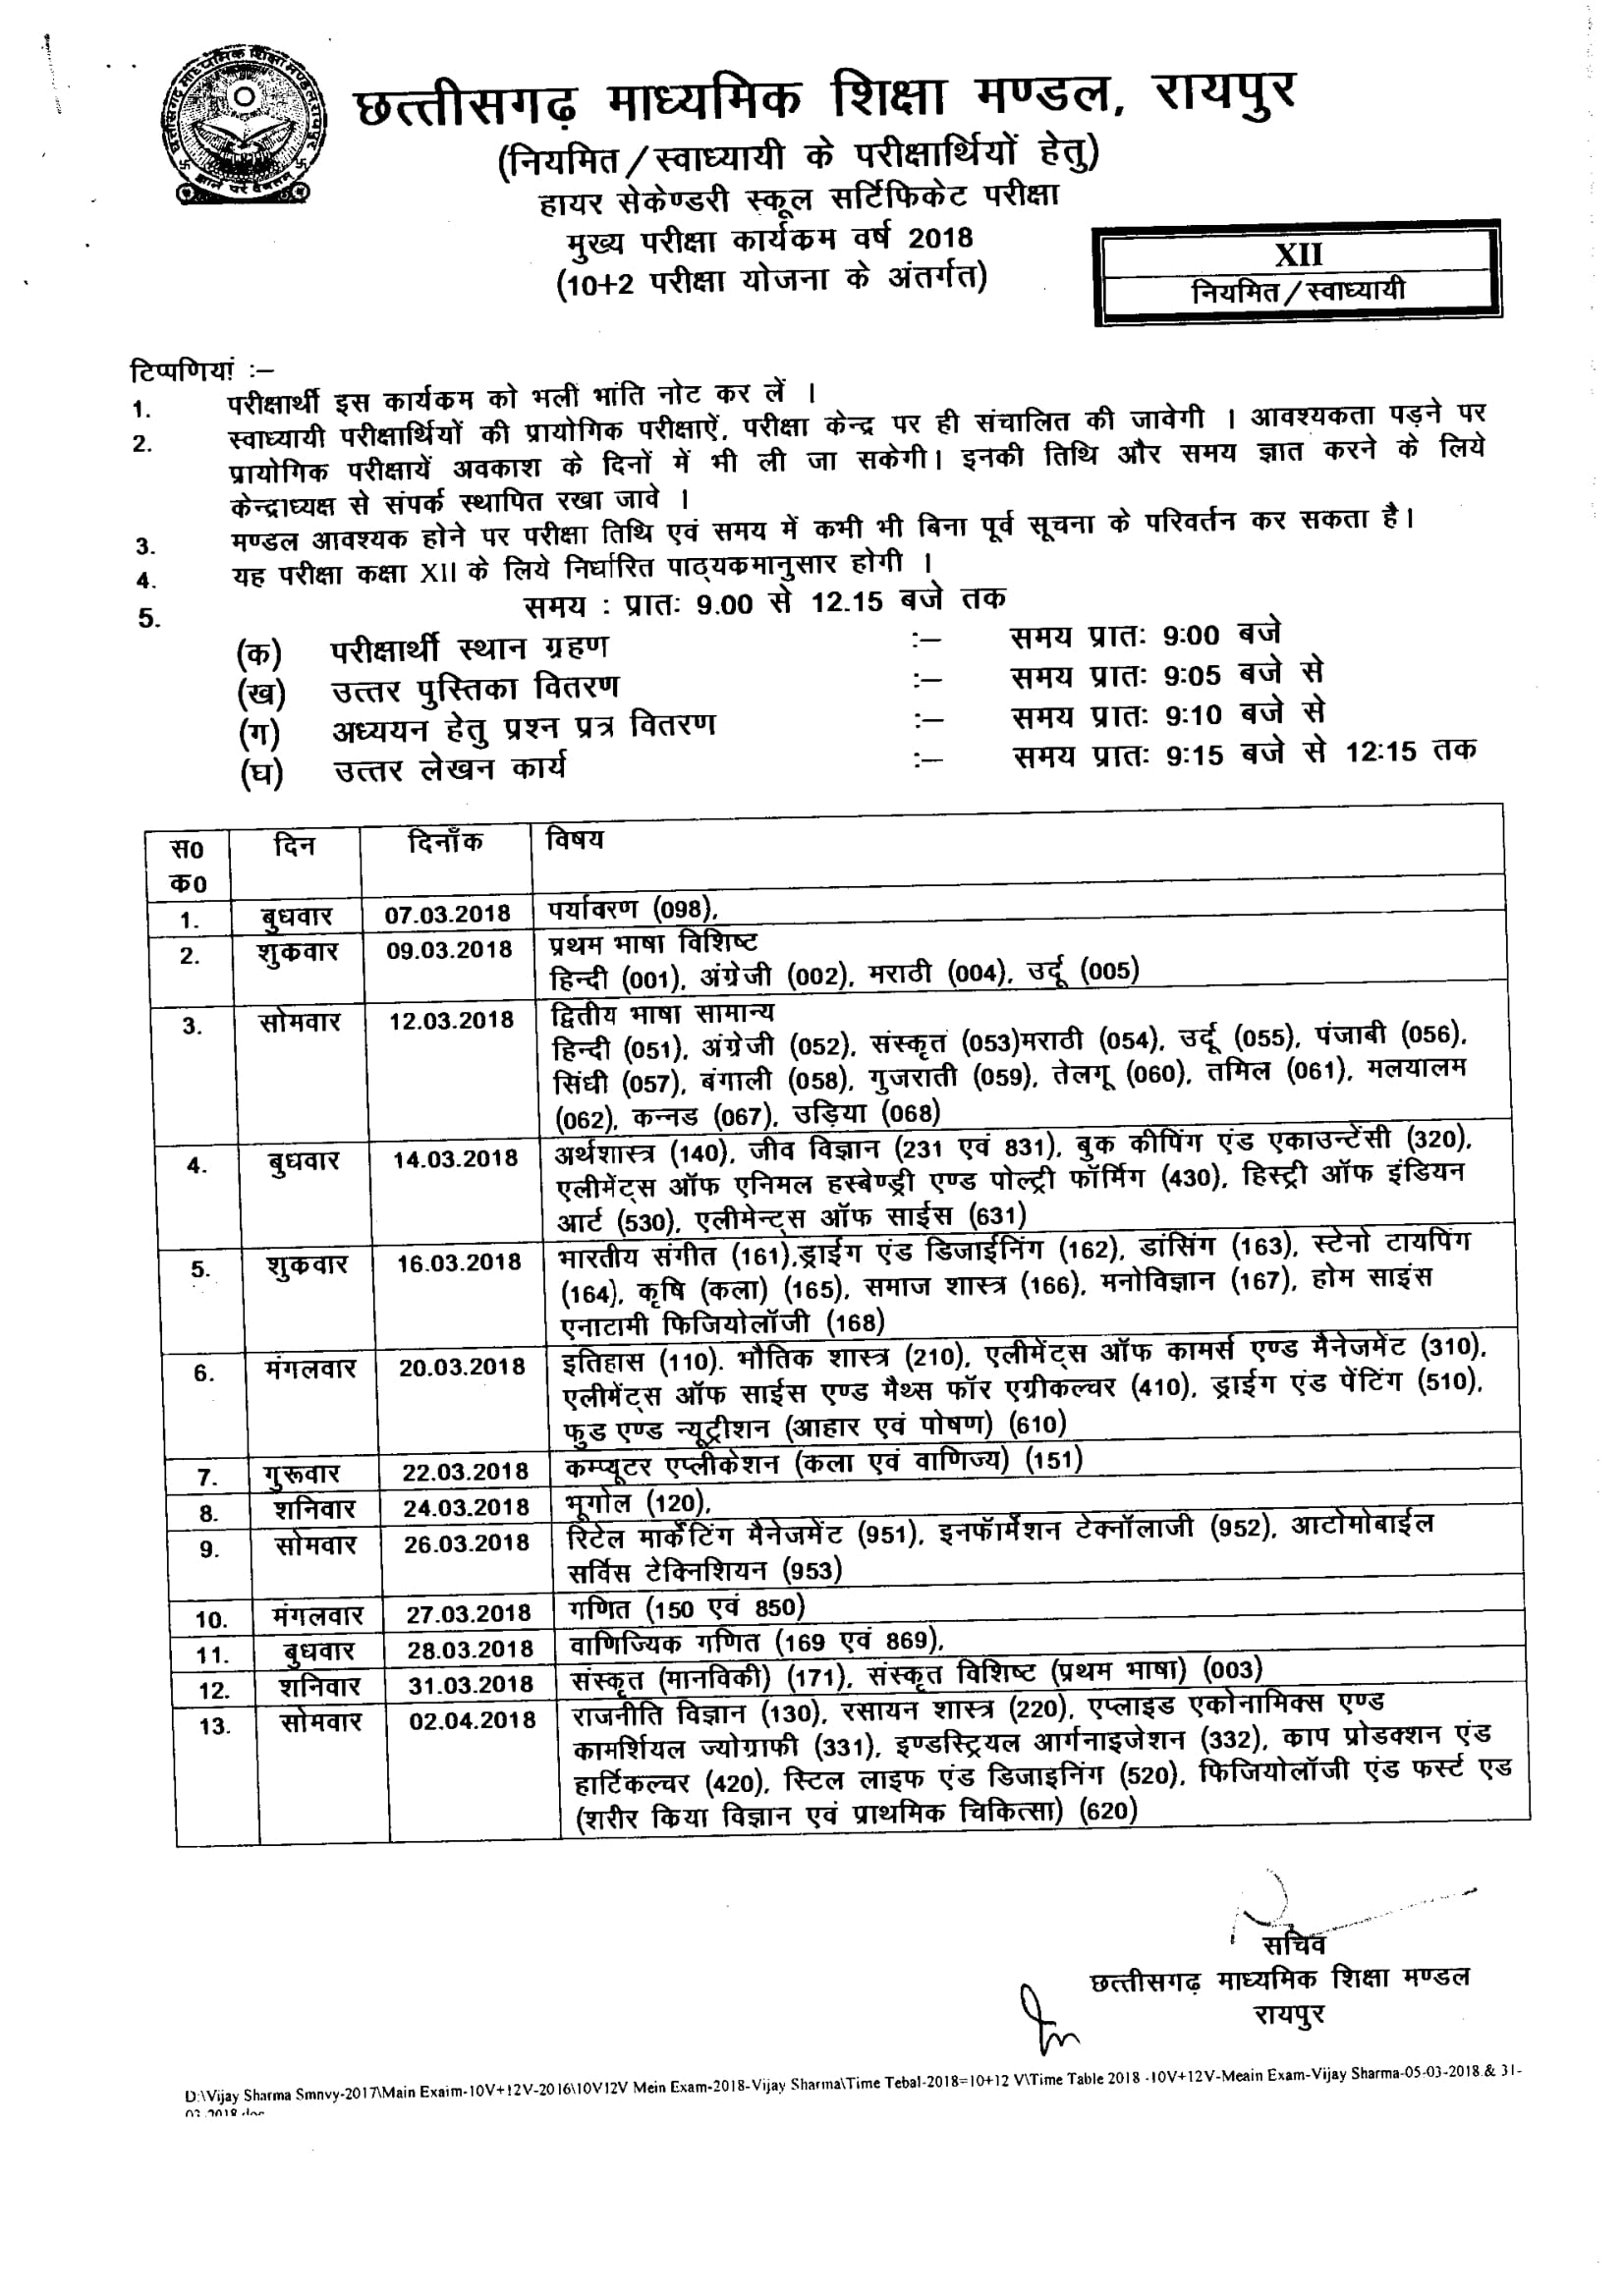 Worksheets 12 Time Table 12th time table 2018 cg exam date pdf chhattisgarh cgbse sheet 2018